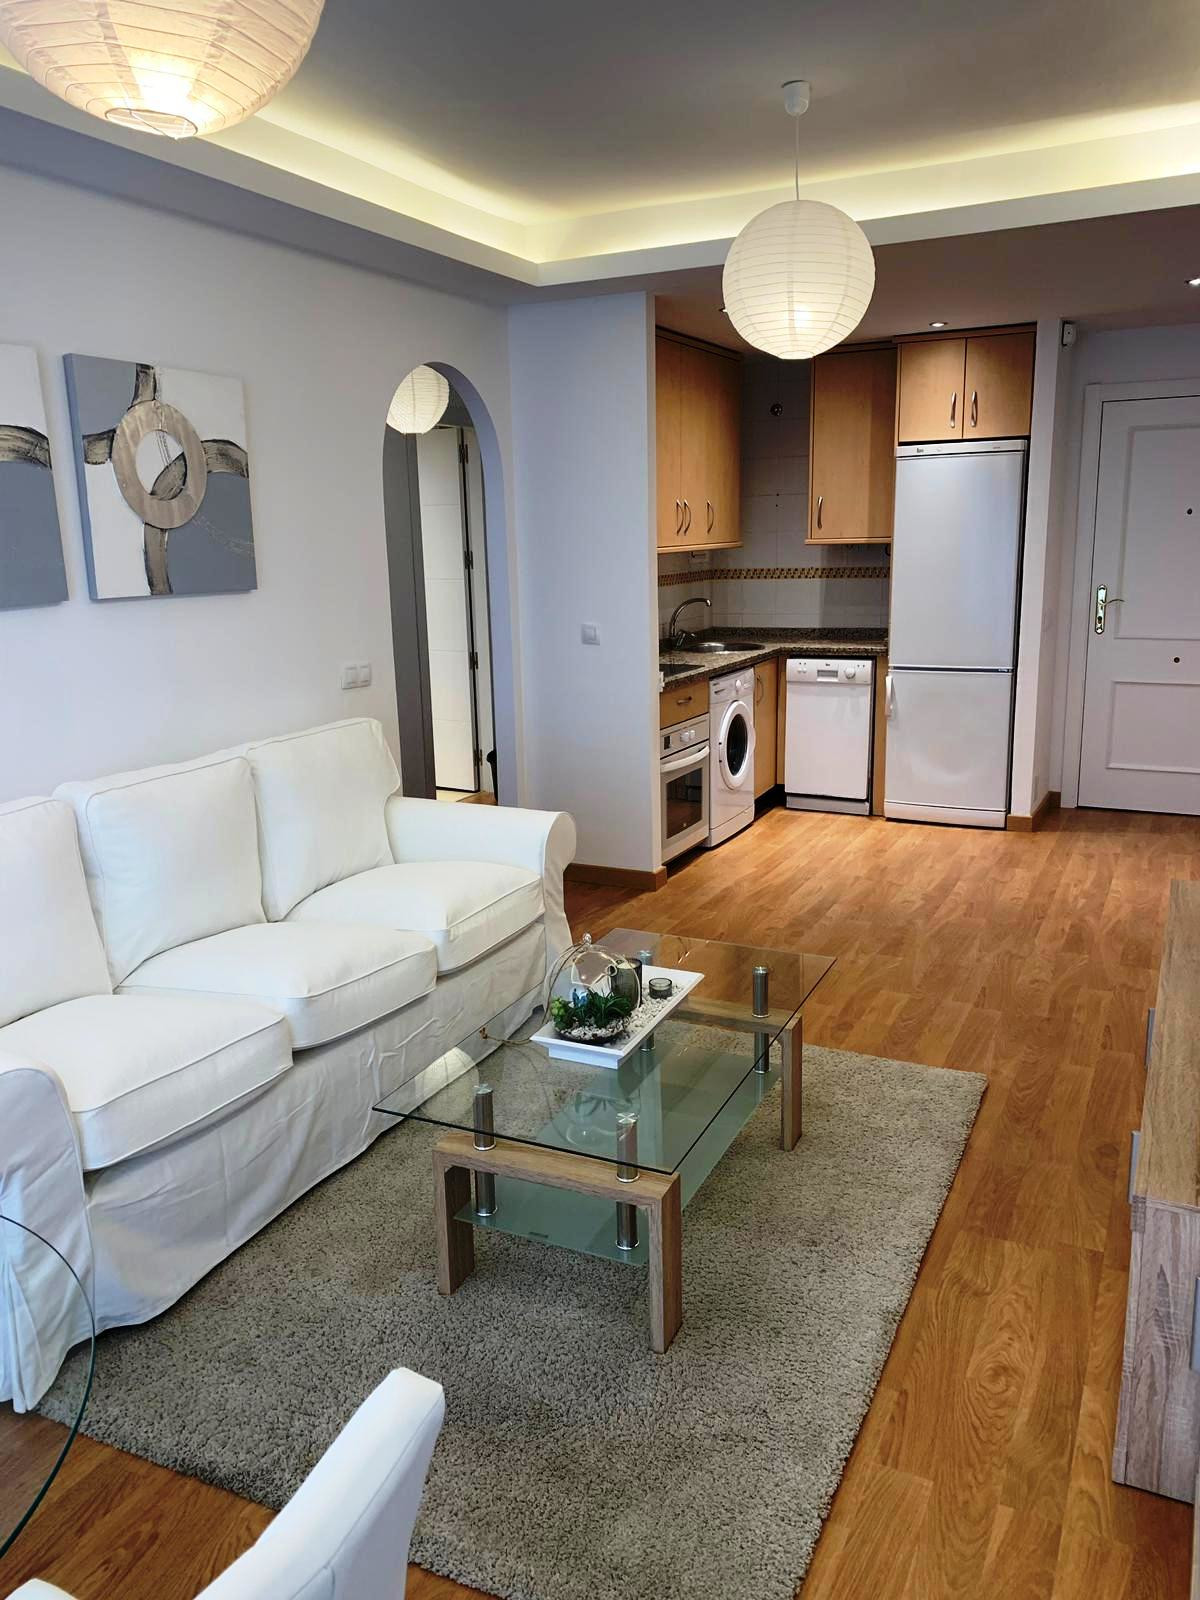 Good apartment in Uptown of the urbanization Los Pacos, in Avenida Los Pacos, is completely renovate,Spain